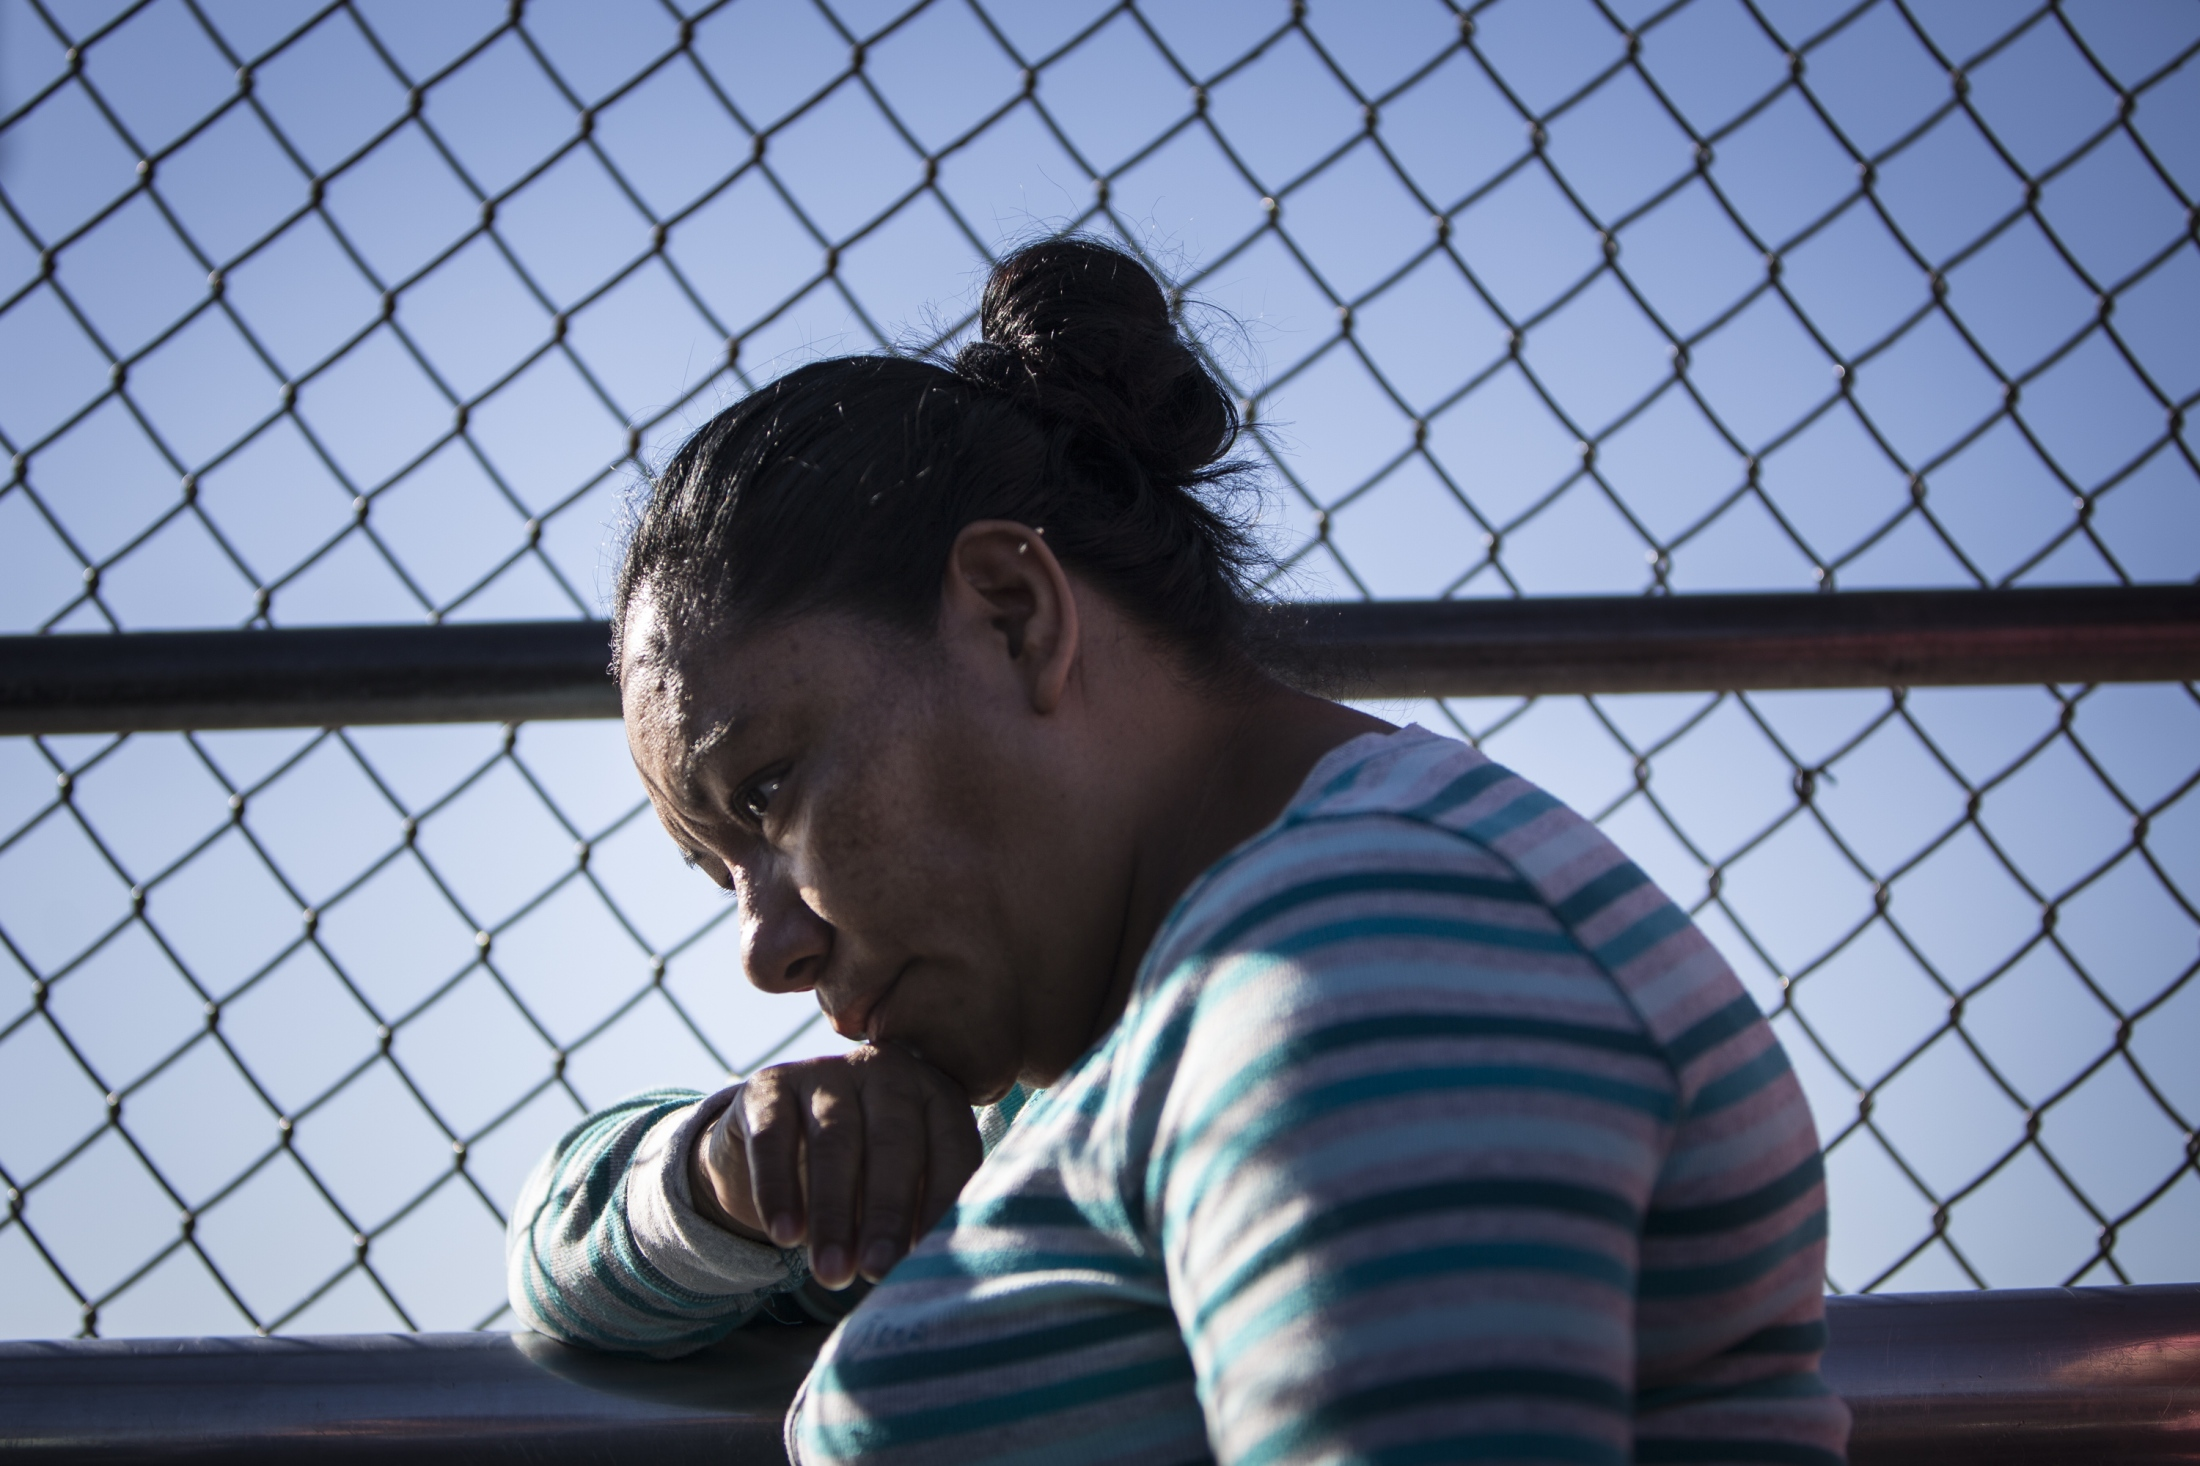 Angelica of Michoacán waits at the El Paso del Norte Port of Entry at the international boundary line to cross into the United States to seek asylum for her and her grandchild on June 20, 2018. they along with a family of five were assisted by the Annunciation House, a migrant aid agency that runs a shelter in El Paso, Texas, on June 20, 2018.